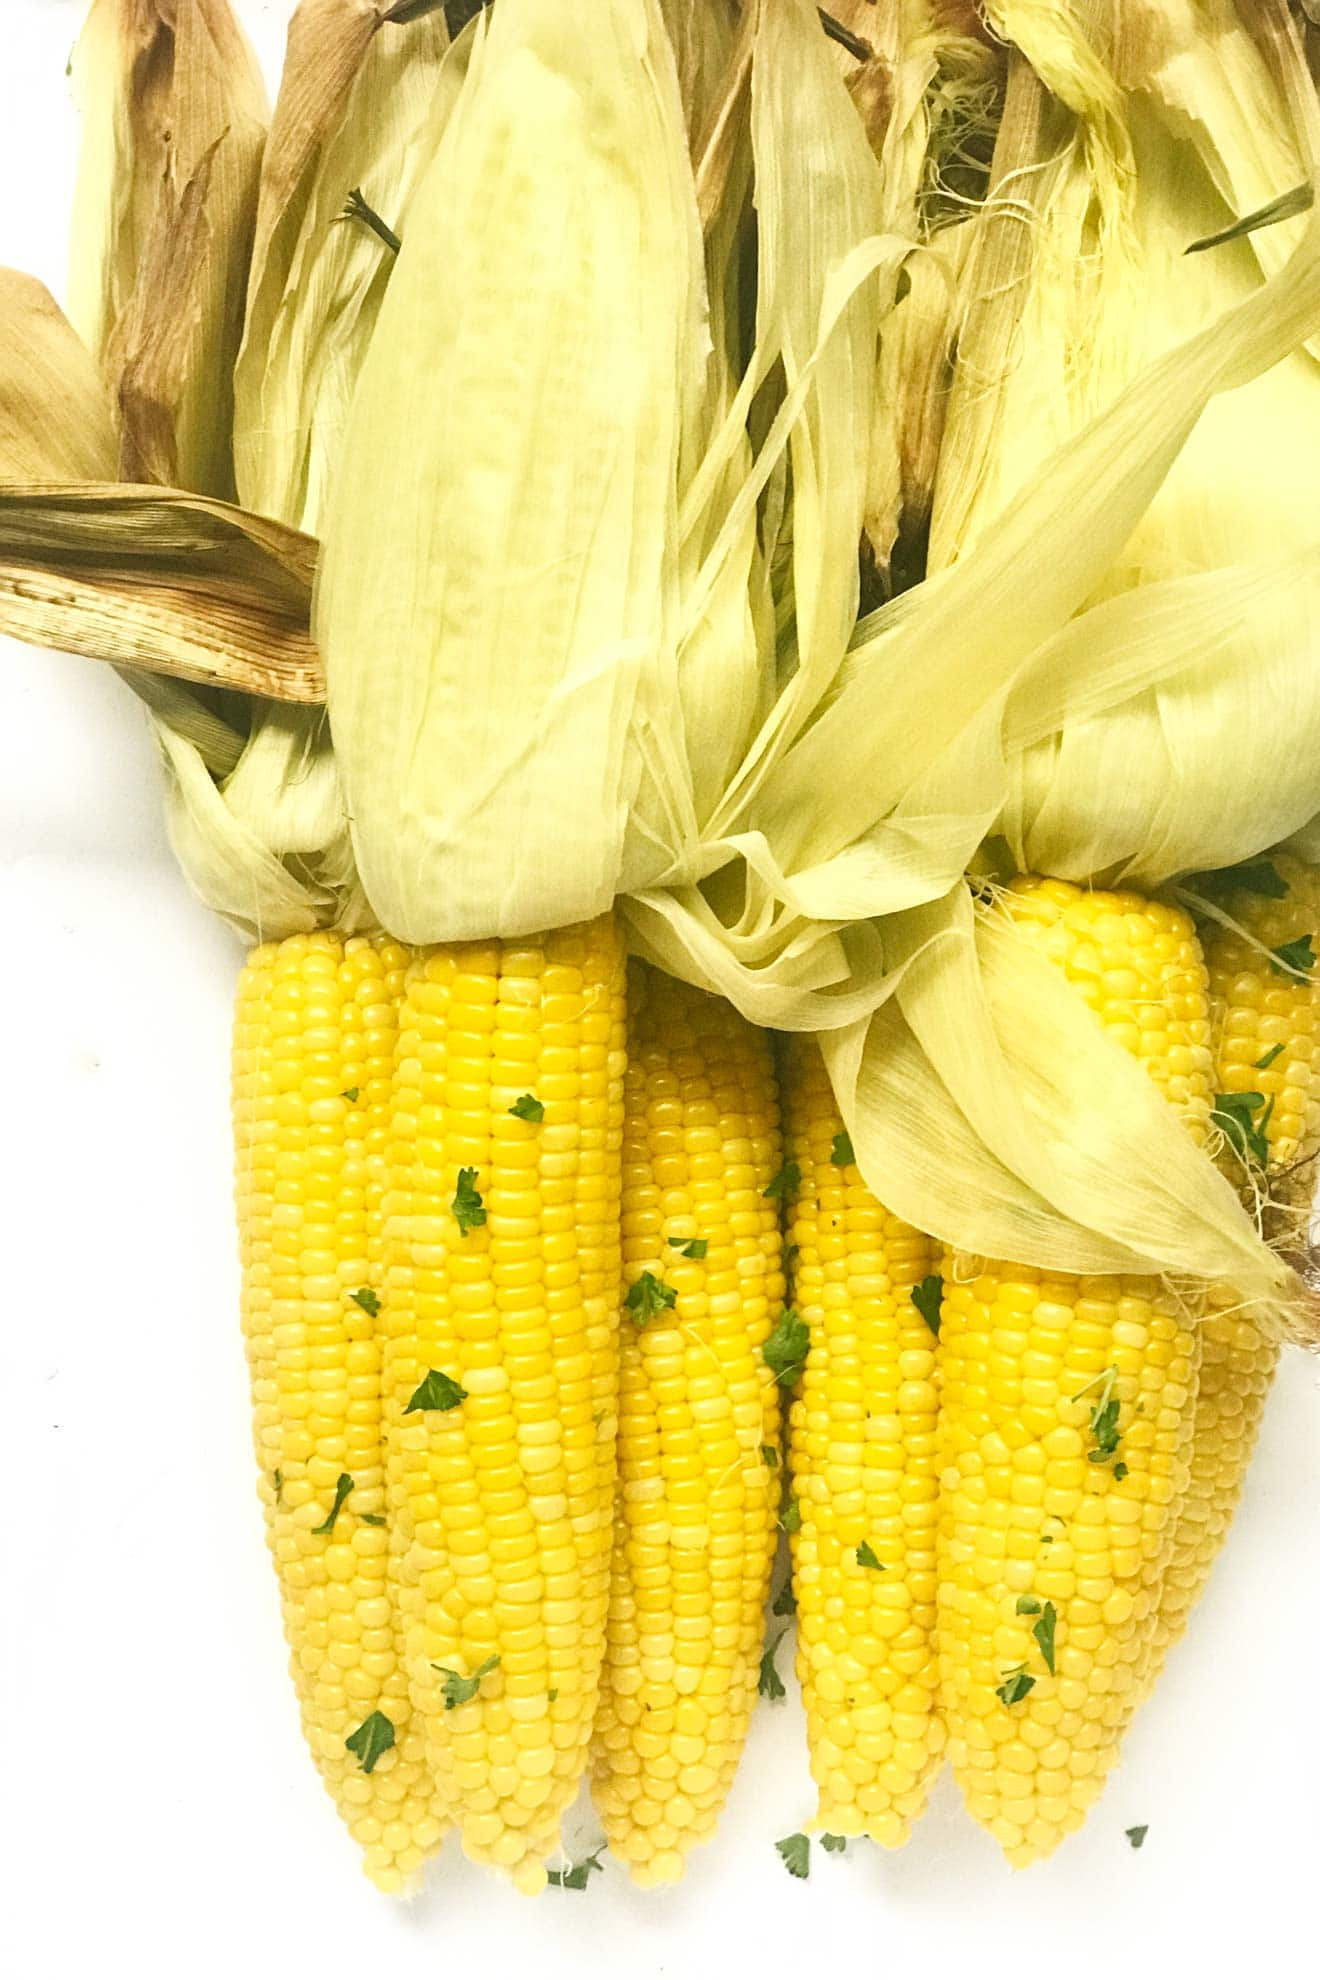 Corn on the cob has never been so simple! An oven and 30 min is all you need to make the best oven roasted corn on the cob your mouth has ever tasted!